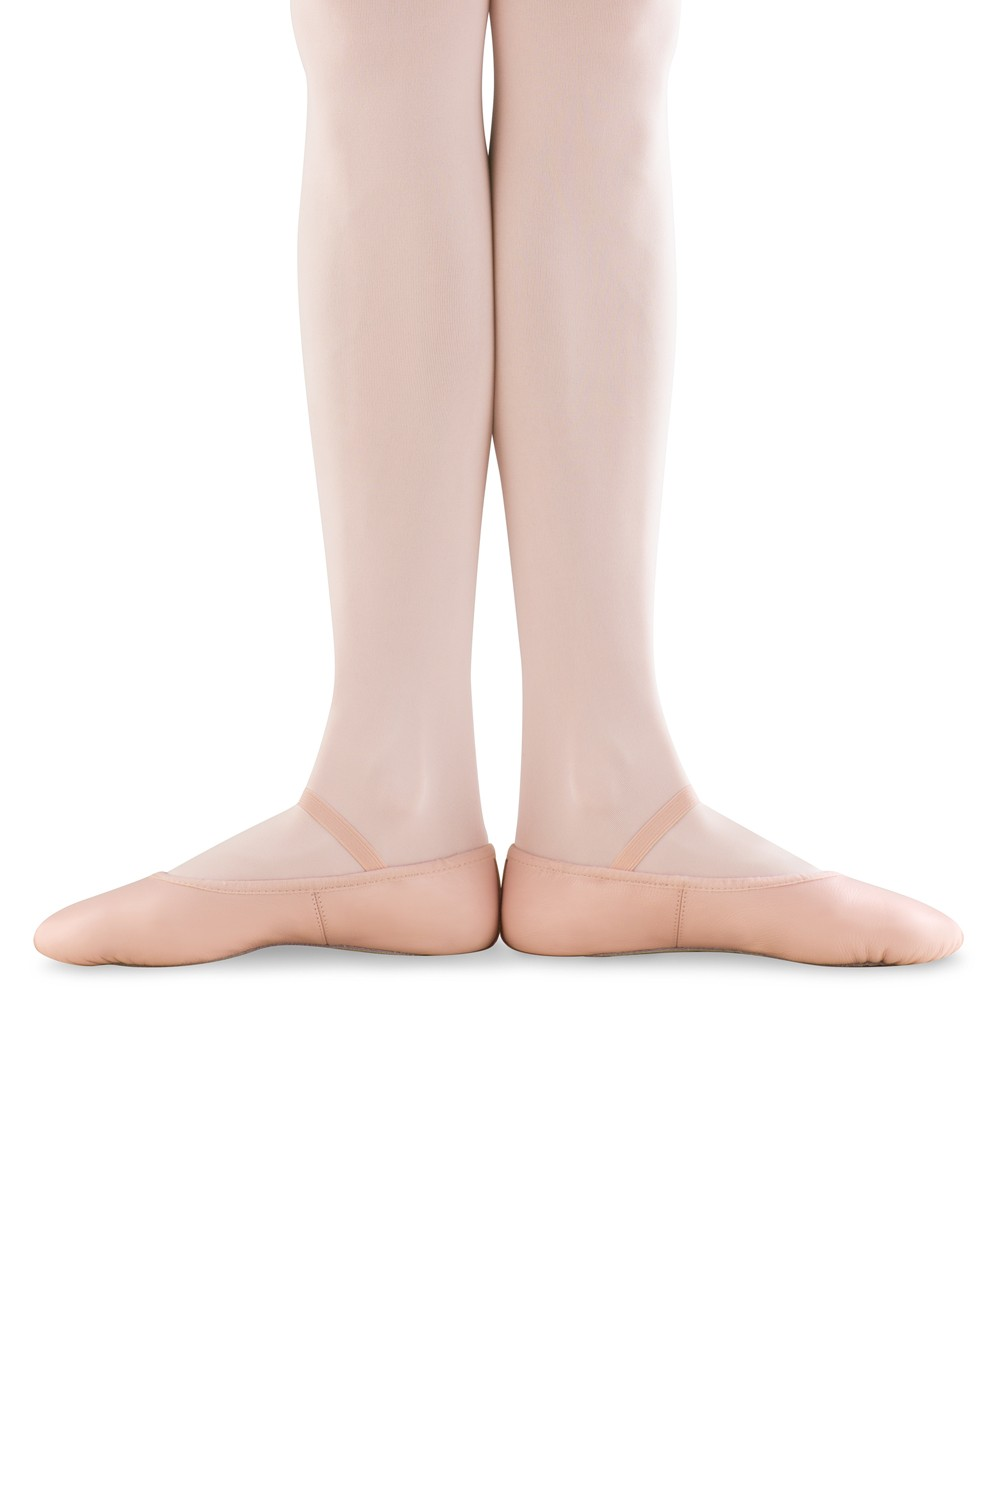 Bunnyhop  Women's Ballet Shoes